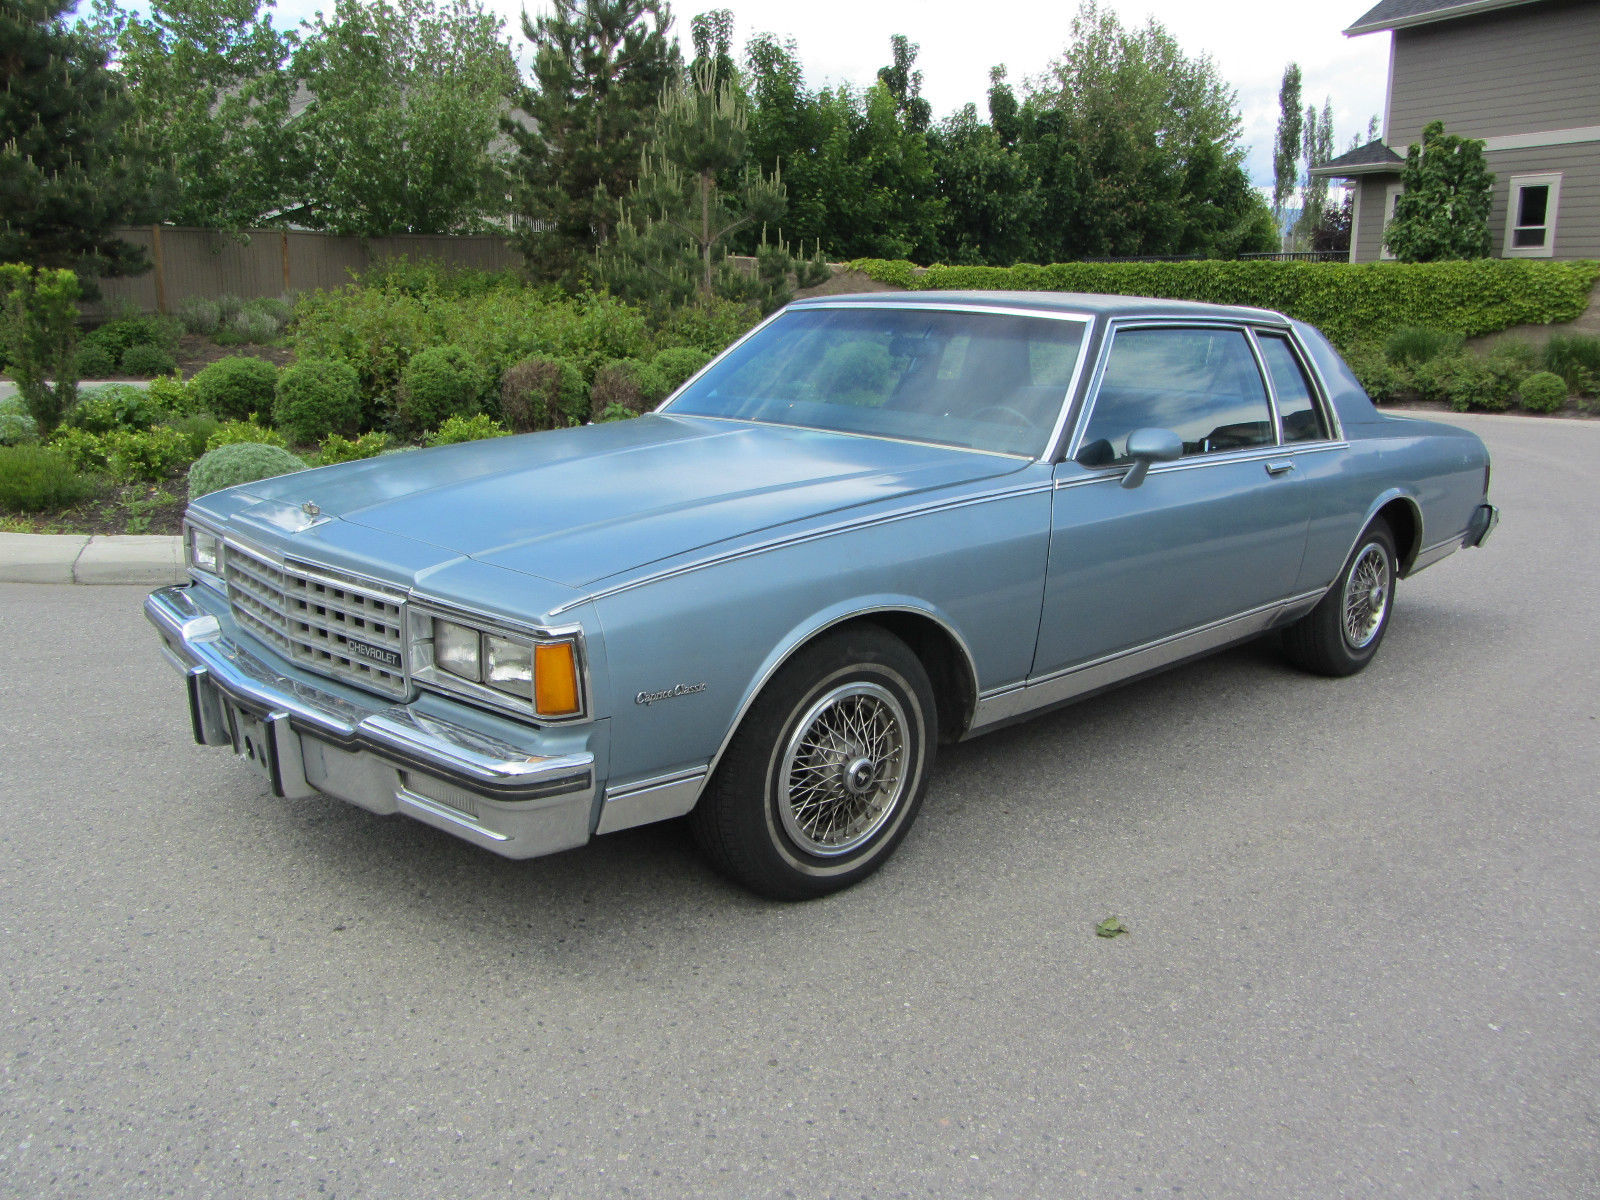 Chevrolet Caprice Door Landau Coupe With Low Miles on Chevrolet Caprice Classic Steering